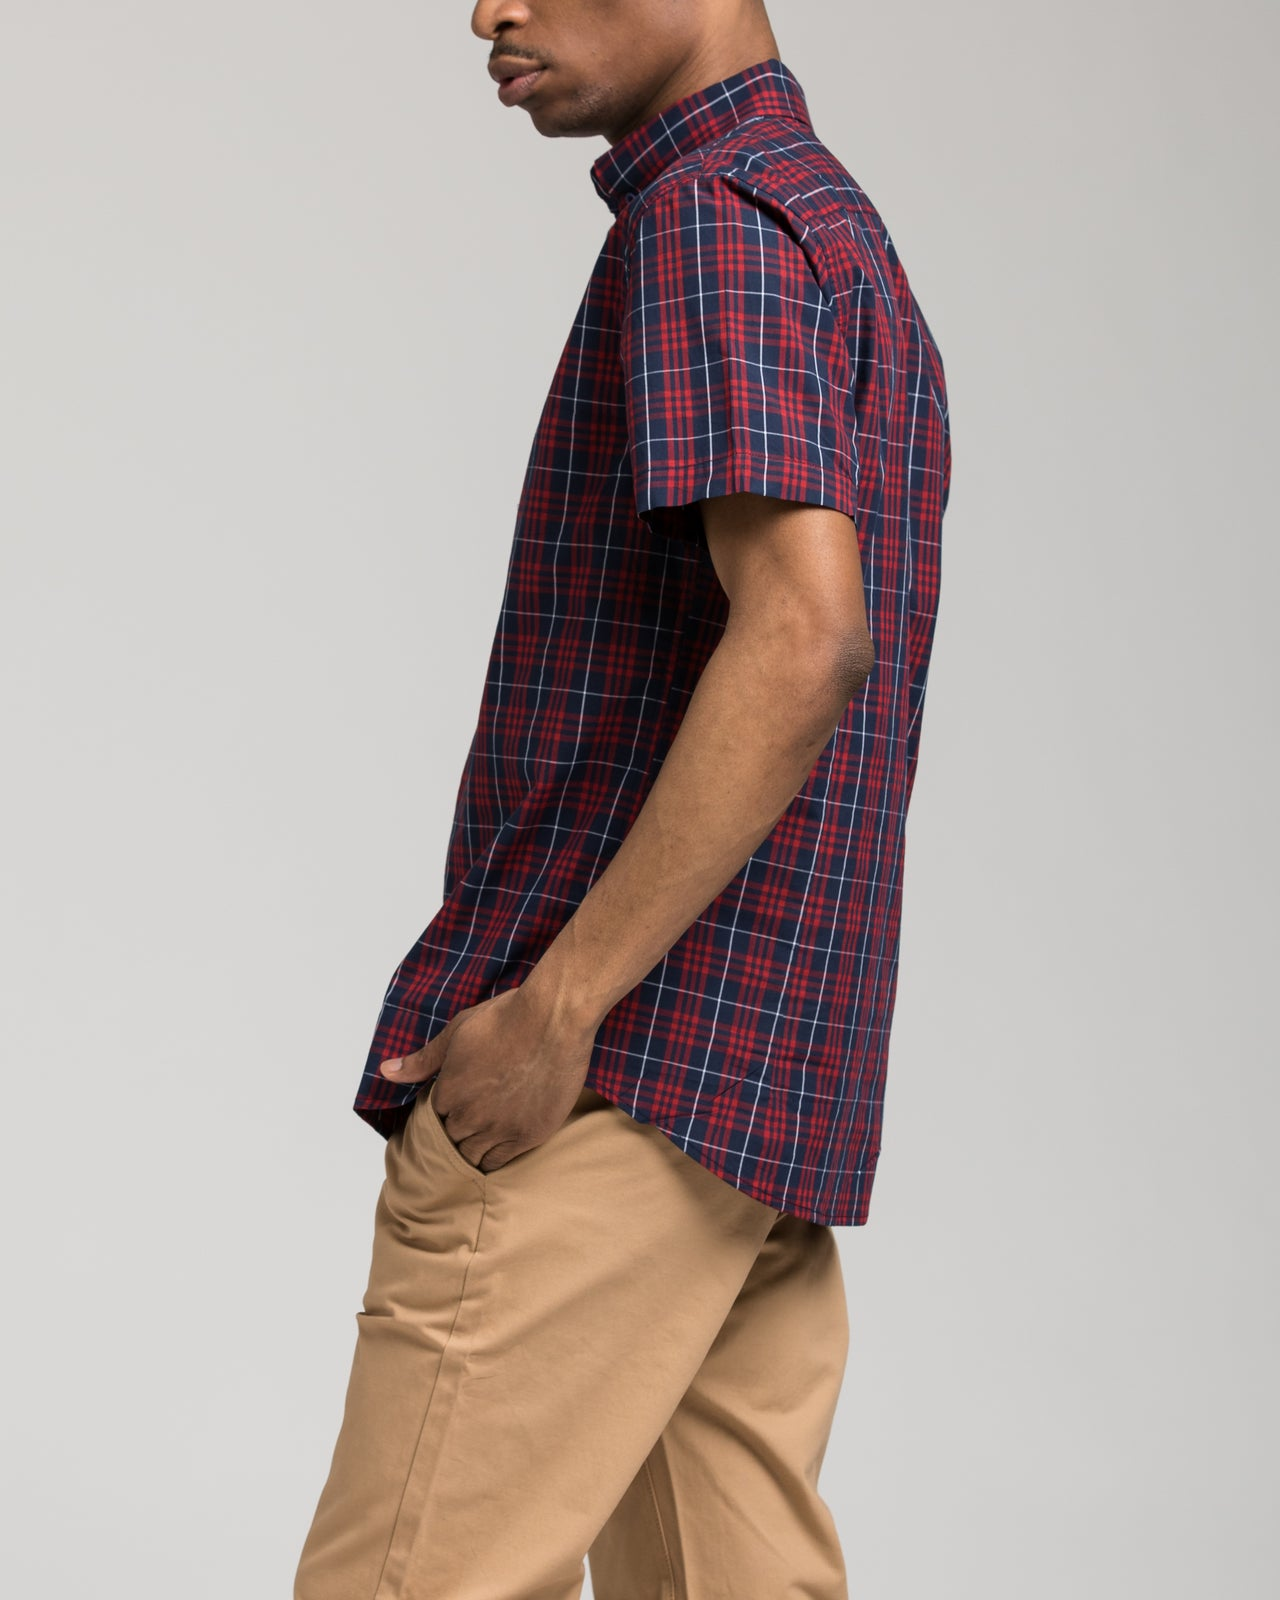 Short Sleeve Plaid Shirt - Color: Red | Red